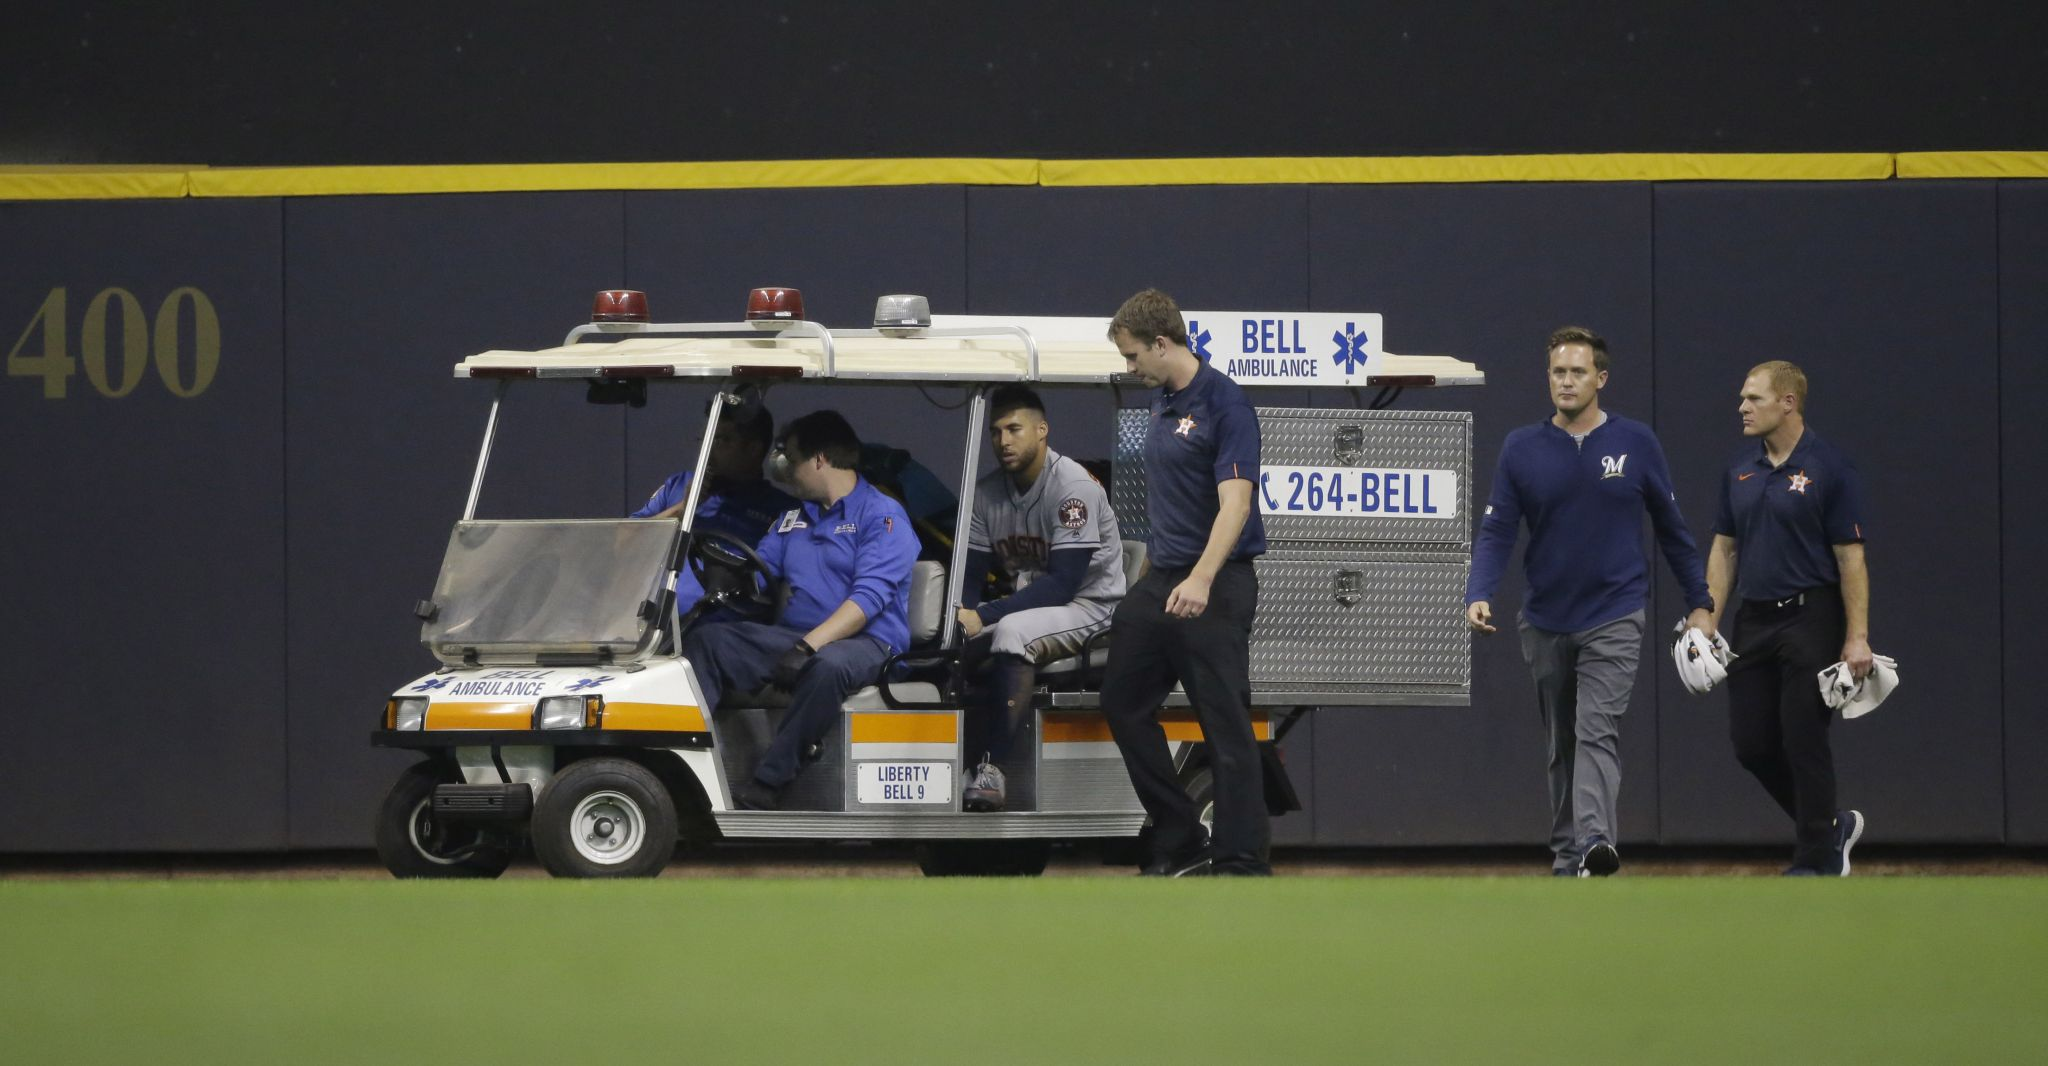 CT's George Springer carted off field after violent injury in Astros-Brewers game